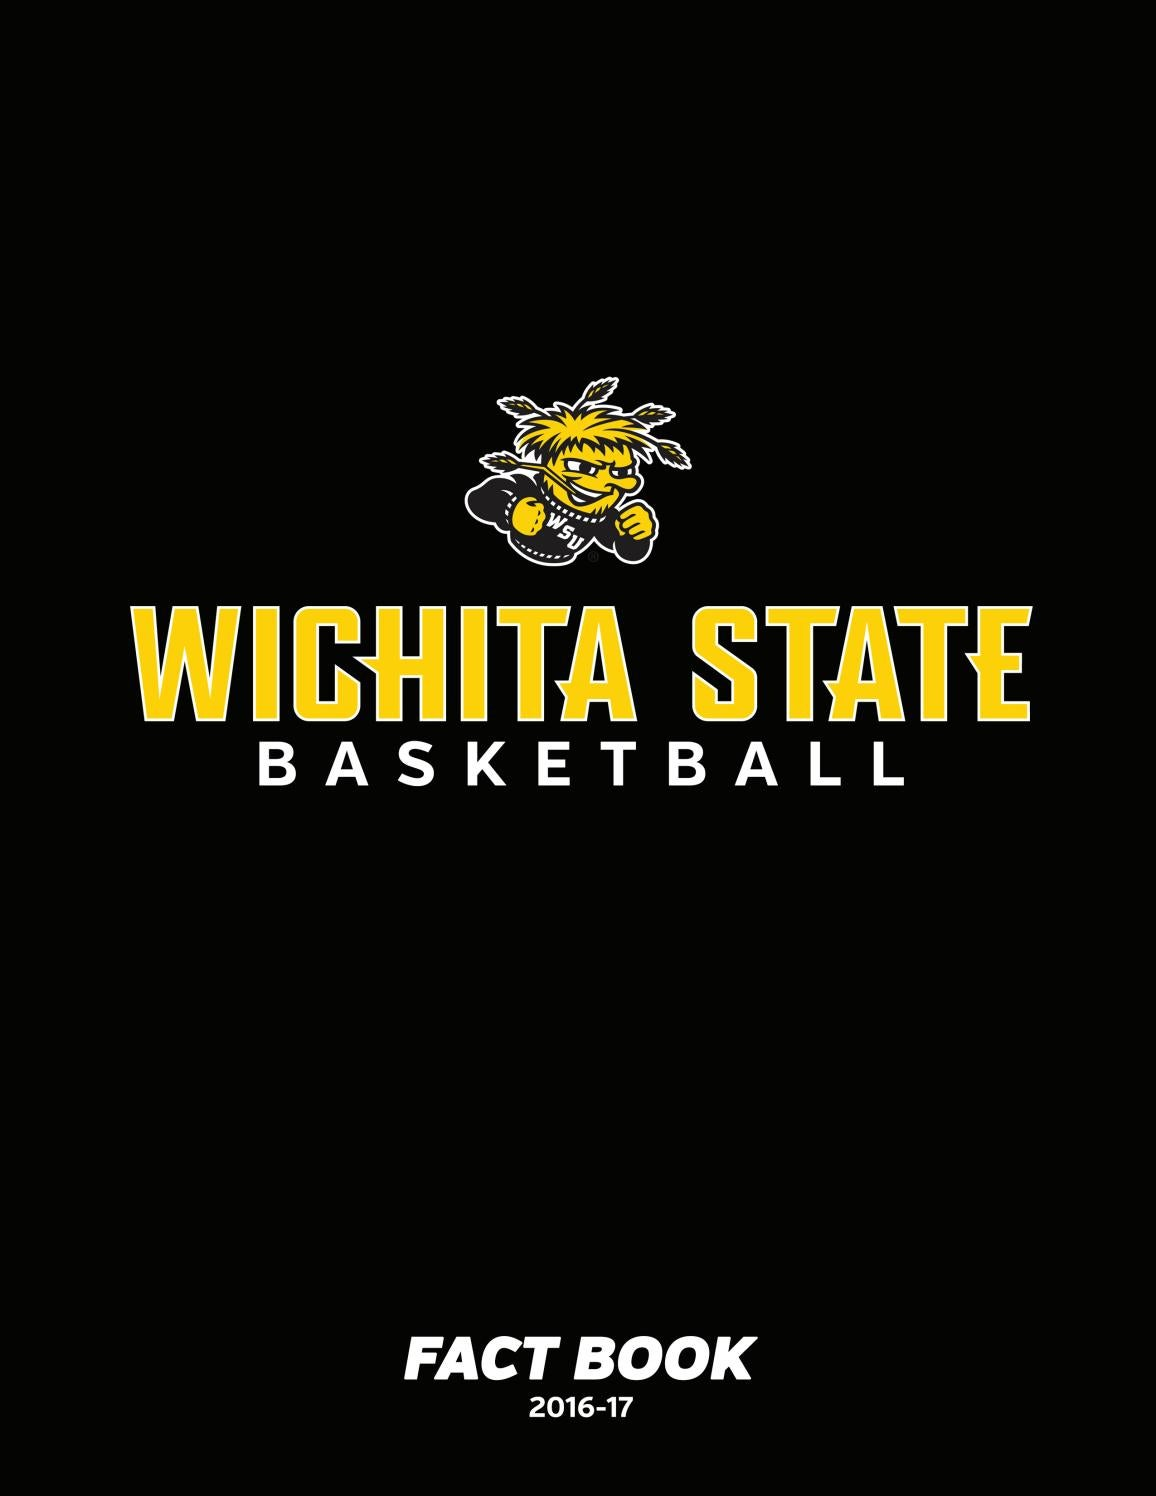 2016-17 Men s Basketball Fact Book by Wichita State Athletics - issuu fe18e2bab